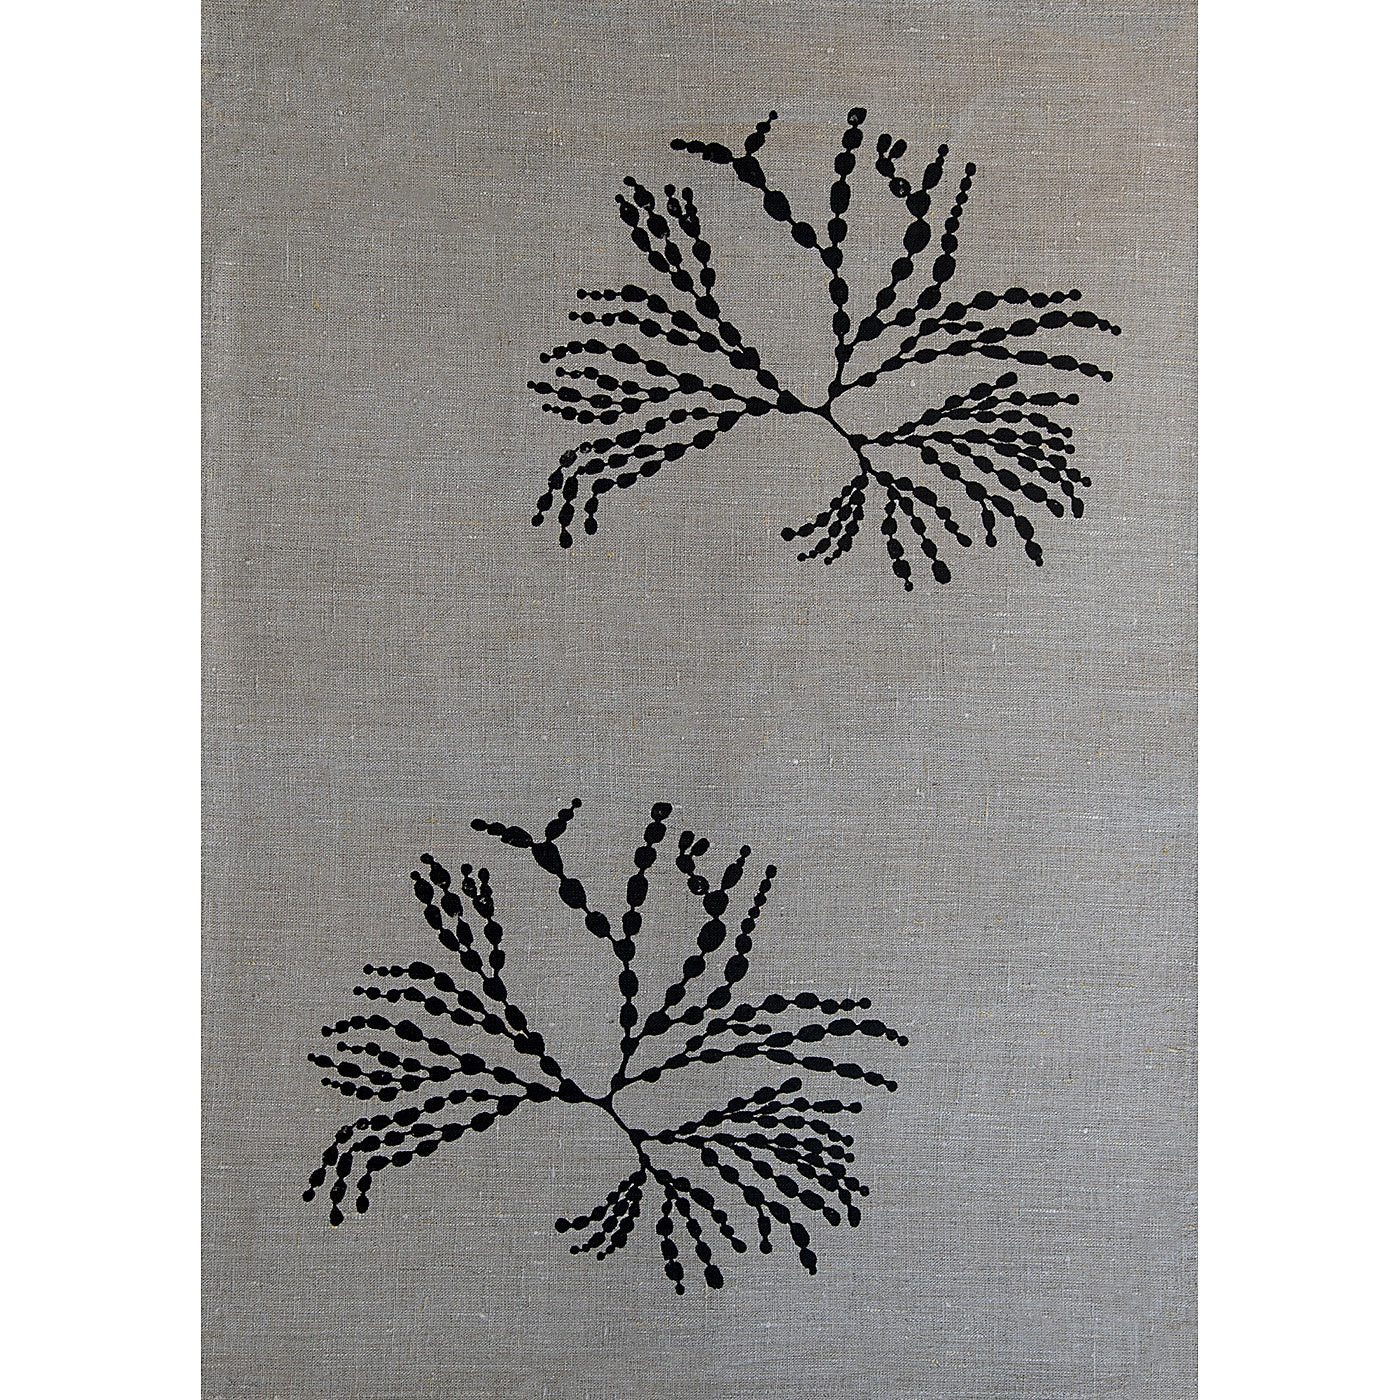 Stalley Textile Co. - Tea Towel - Bubbleweed - Black on Flax